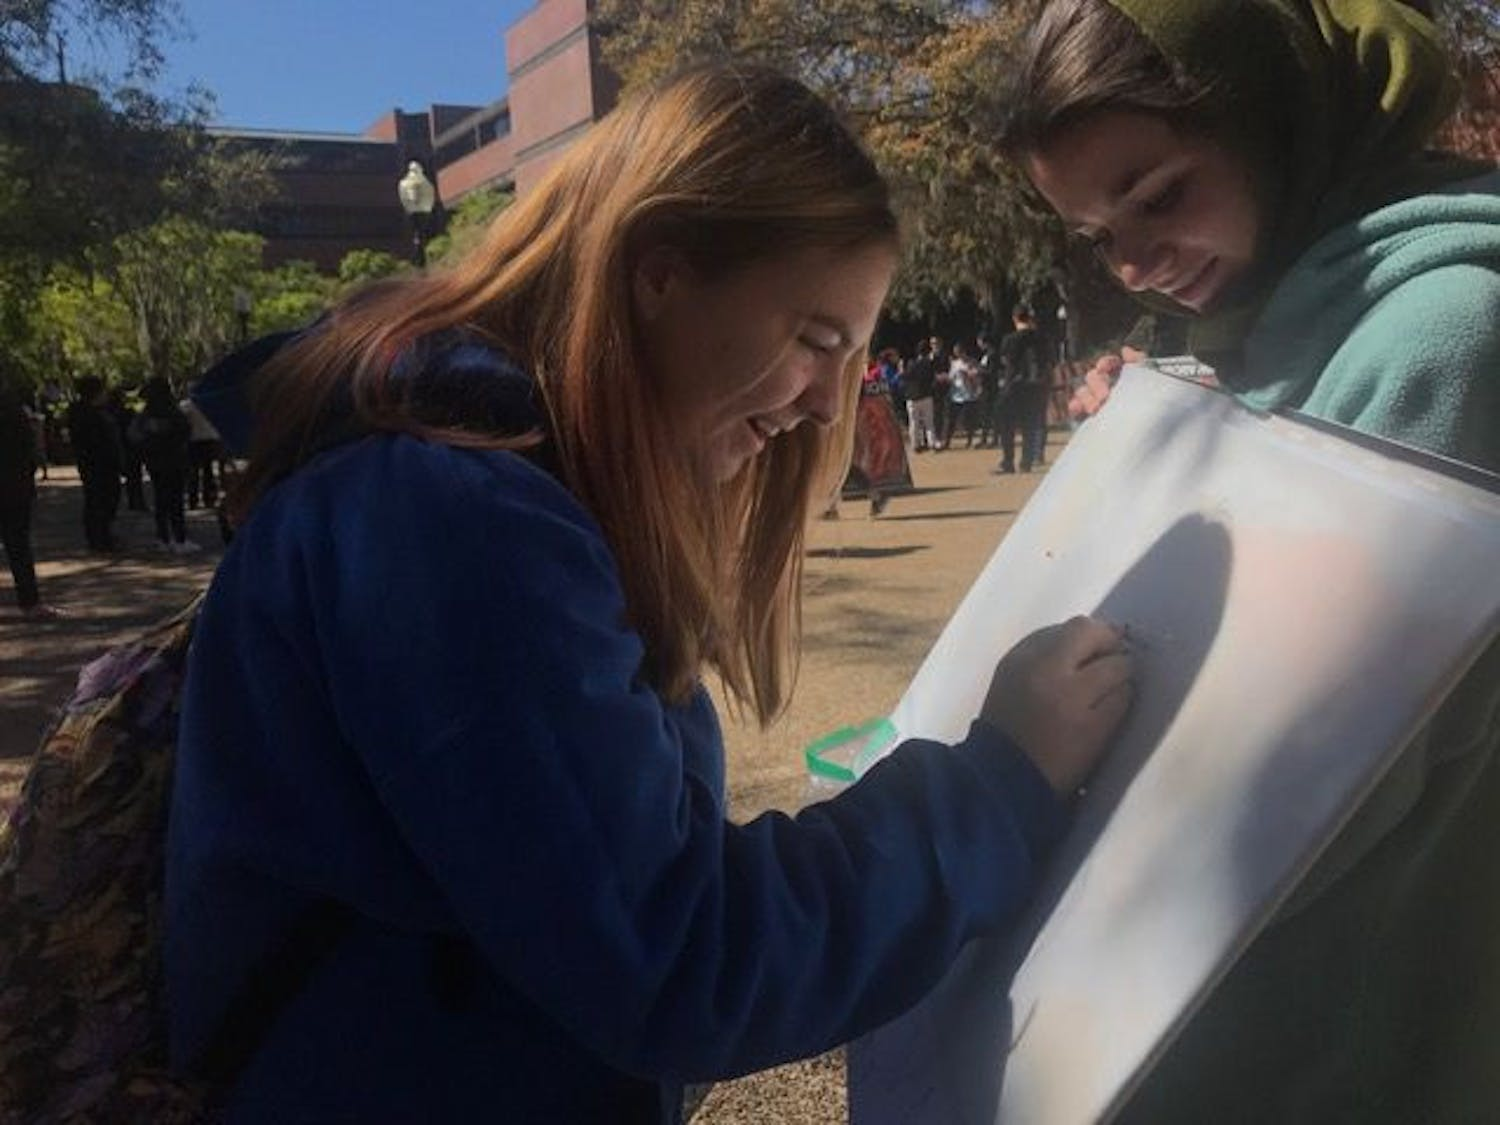 Kaitlin Thorp, an 18-year-old UF wildlife ecology and conservation freshman, stopped by Turlington Plaza on Wednesday morning to participate in Pin Syria on a Map, an event put on by Students Organize for Syria.